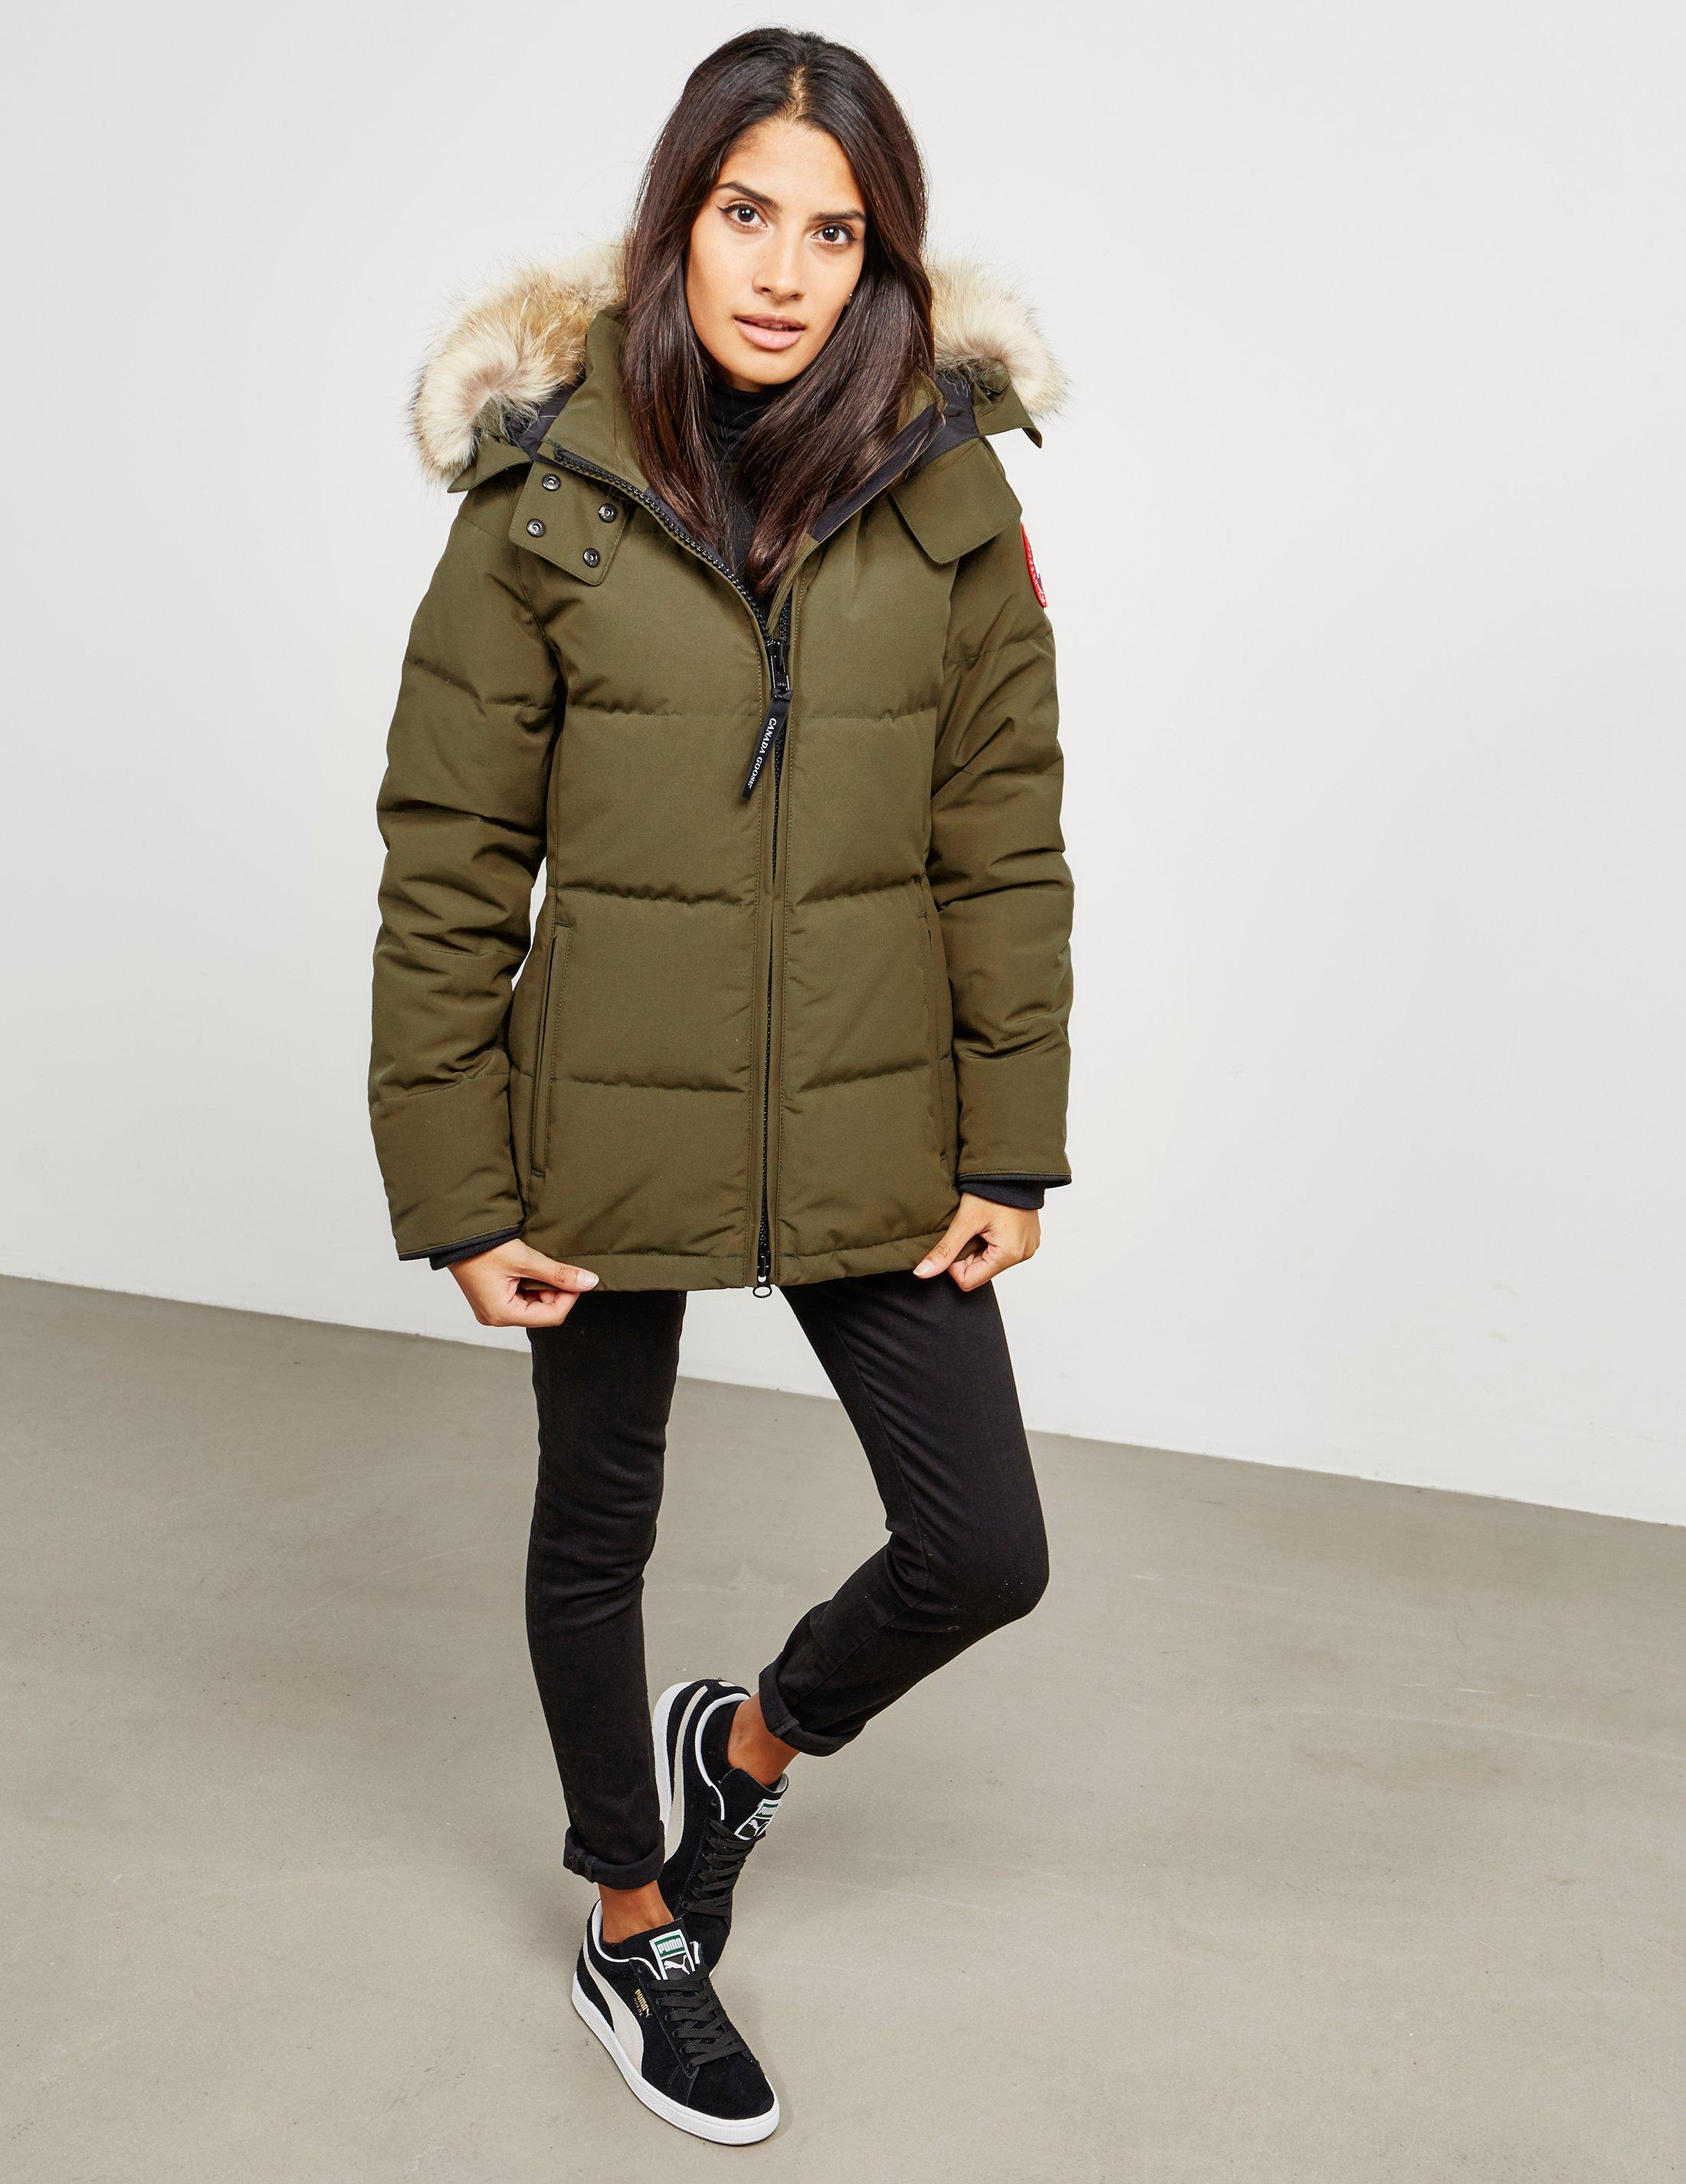 cda1f8025373 Canada Goose Chelsea Padded Parka Jacket Green in Green - Lyst